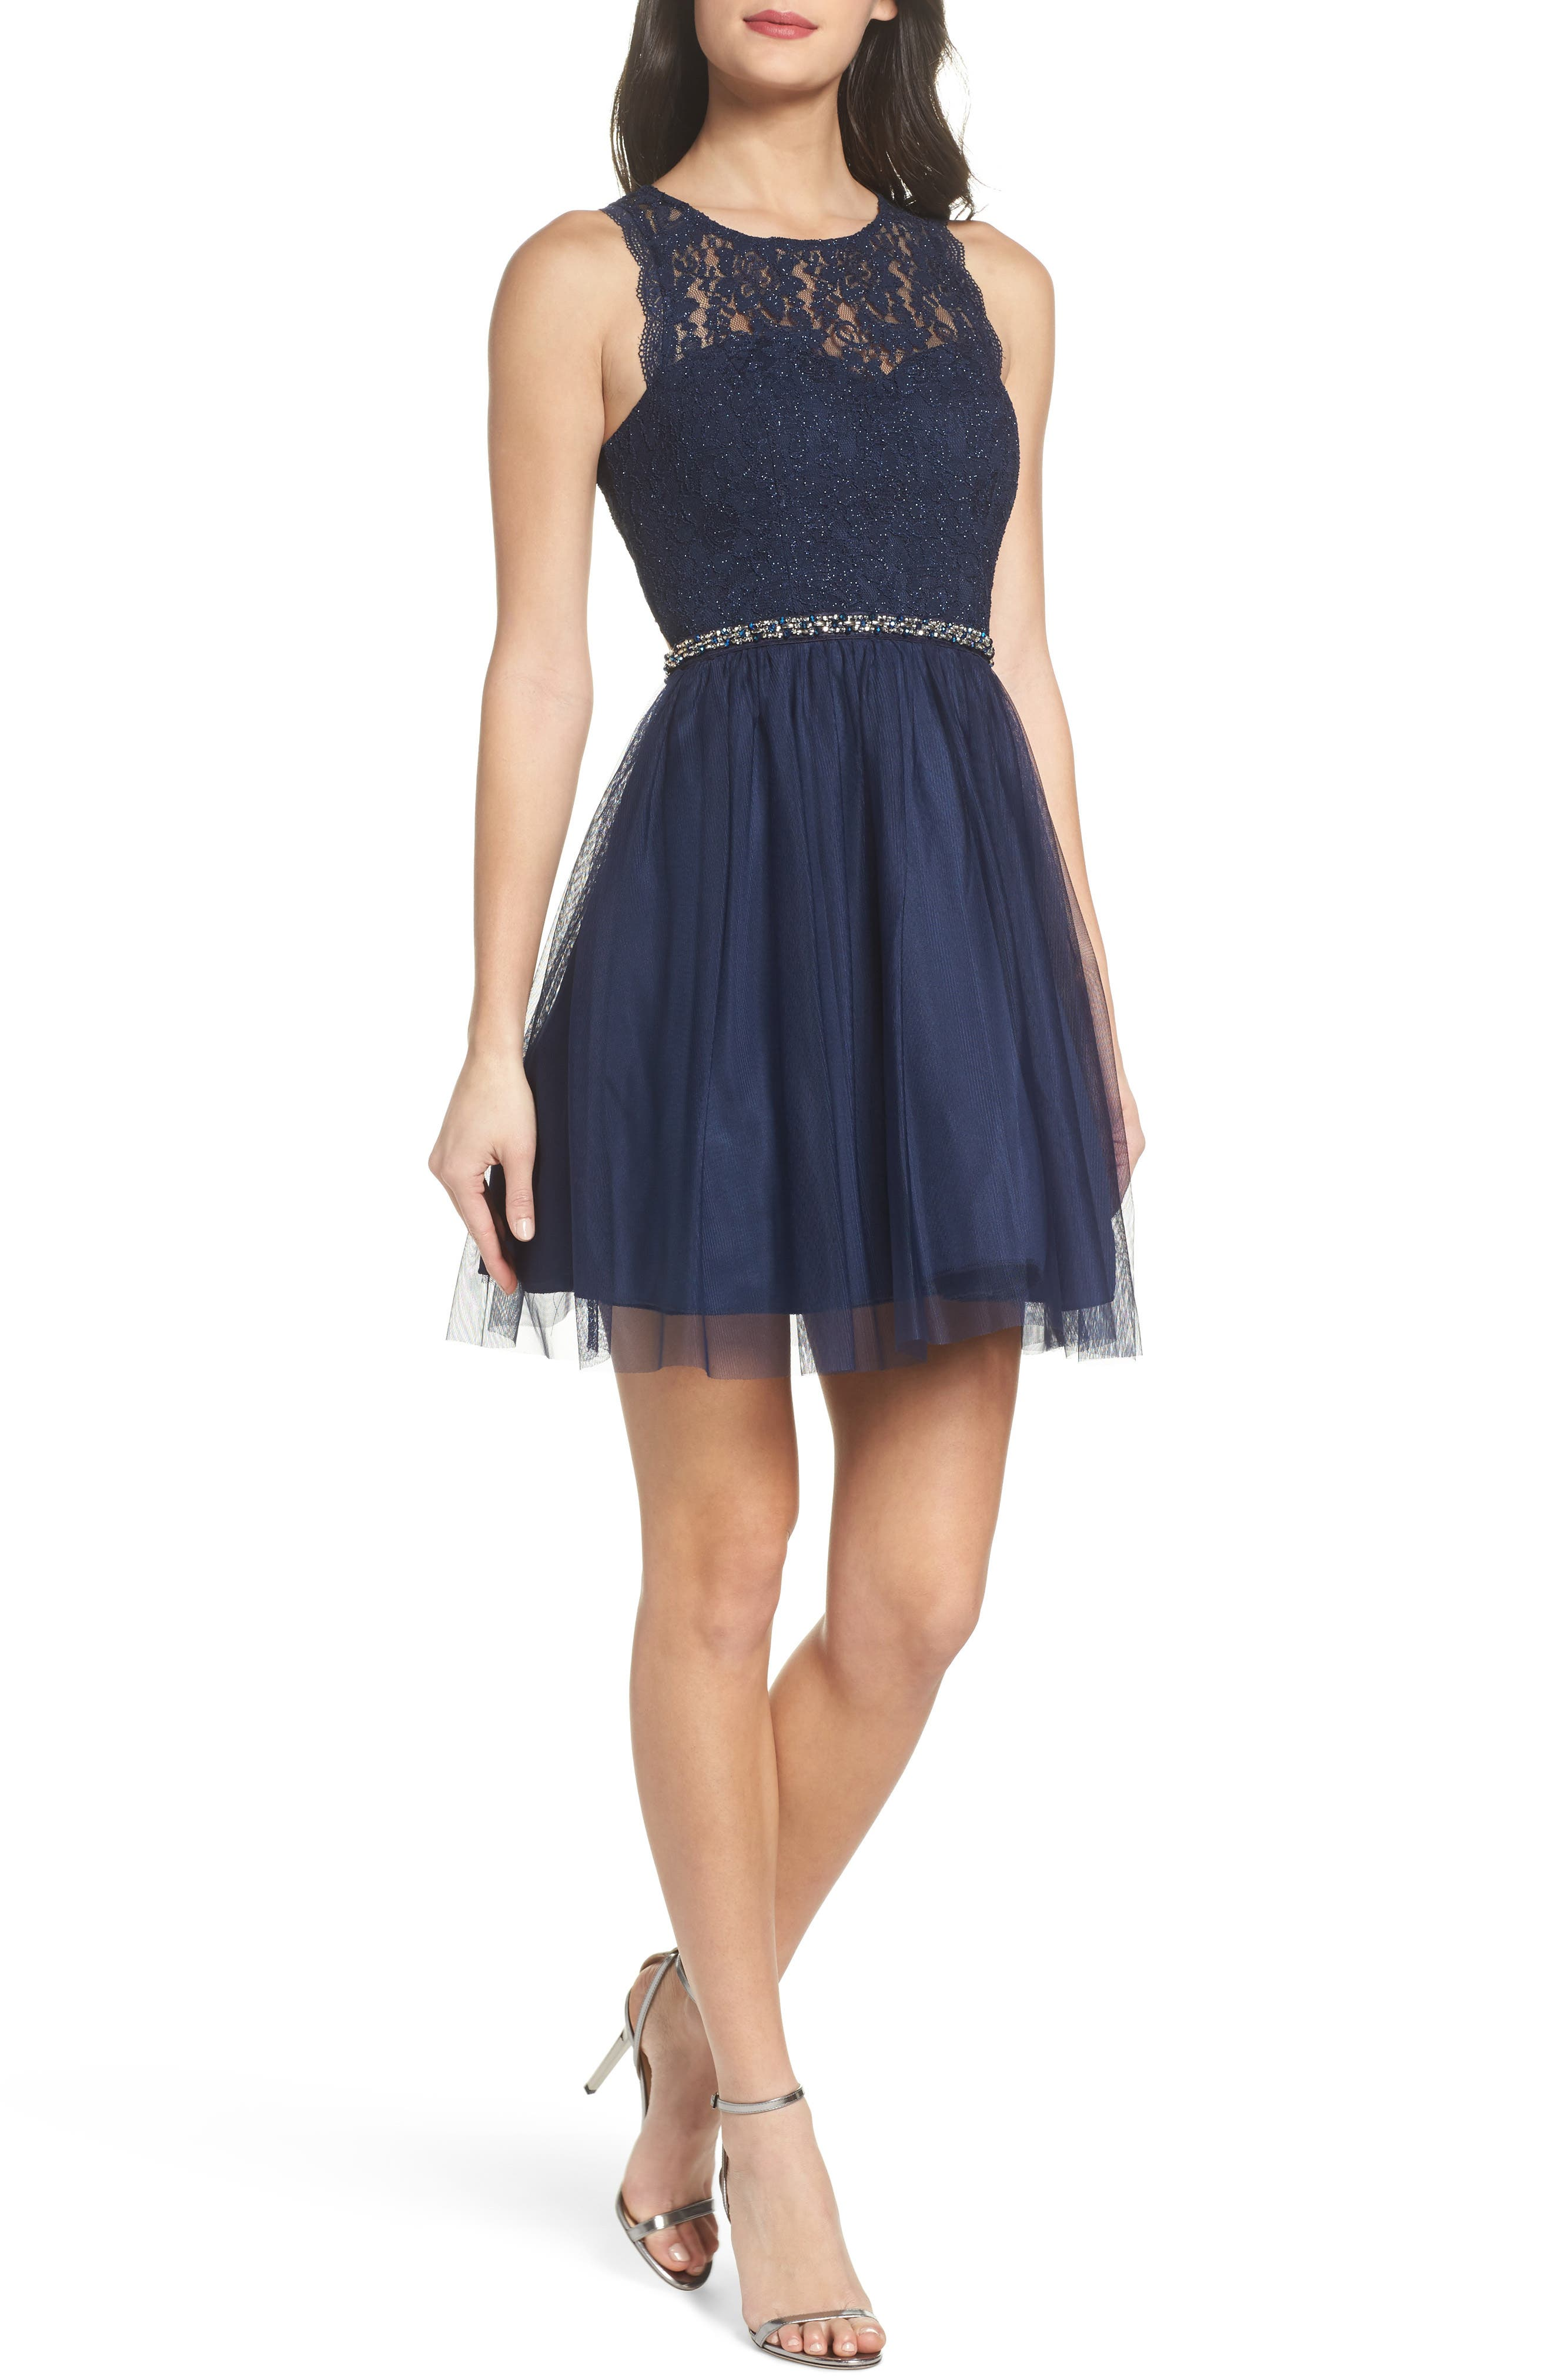 Sequin Hearts Glitter Lace Fit & Flare Dress